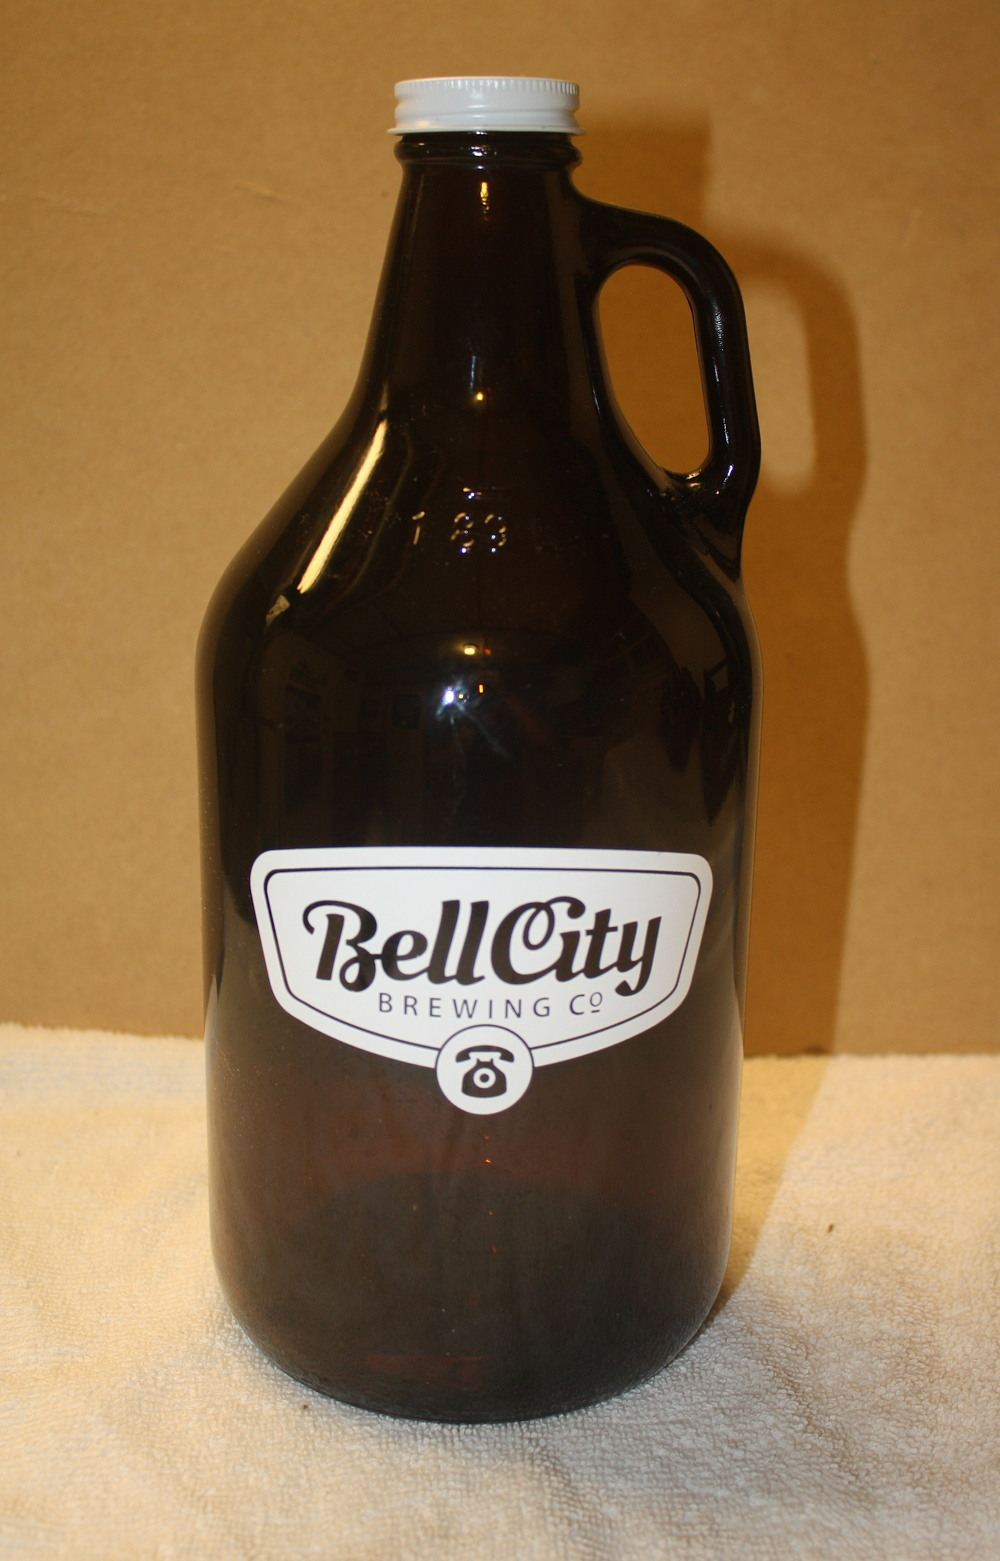 GR - Bell City Brewing Co (ON)